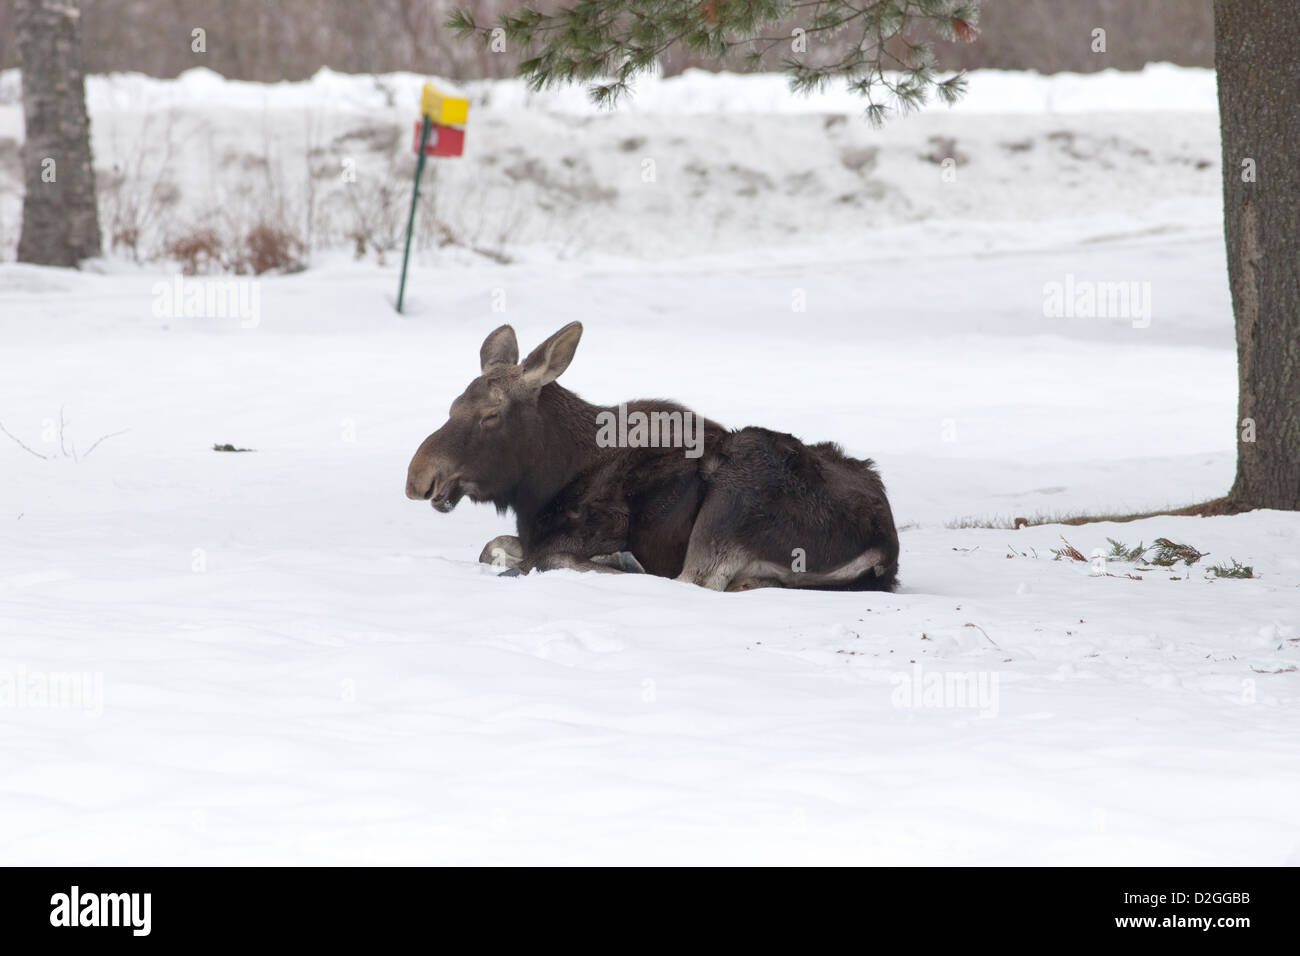 Moose relaxes in snow. - Stock Image